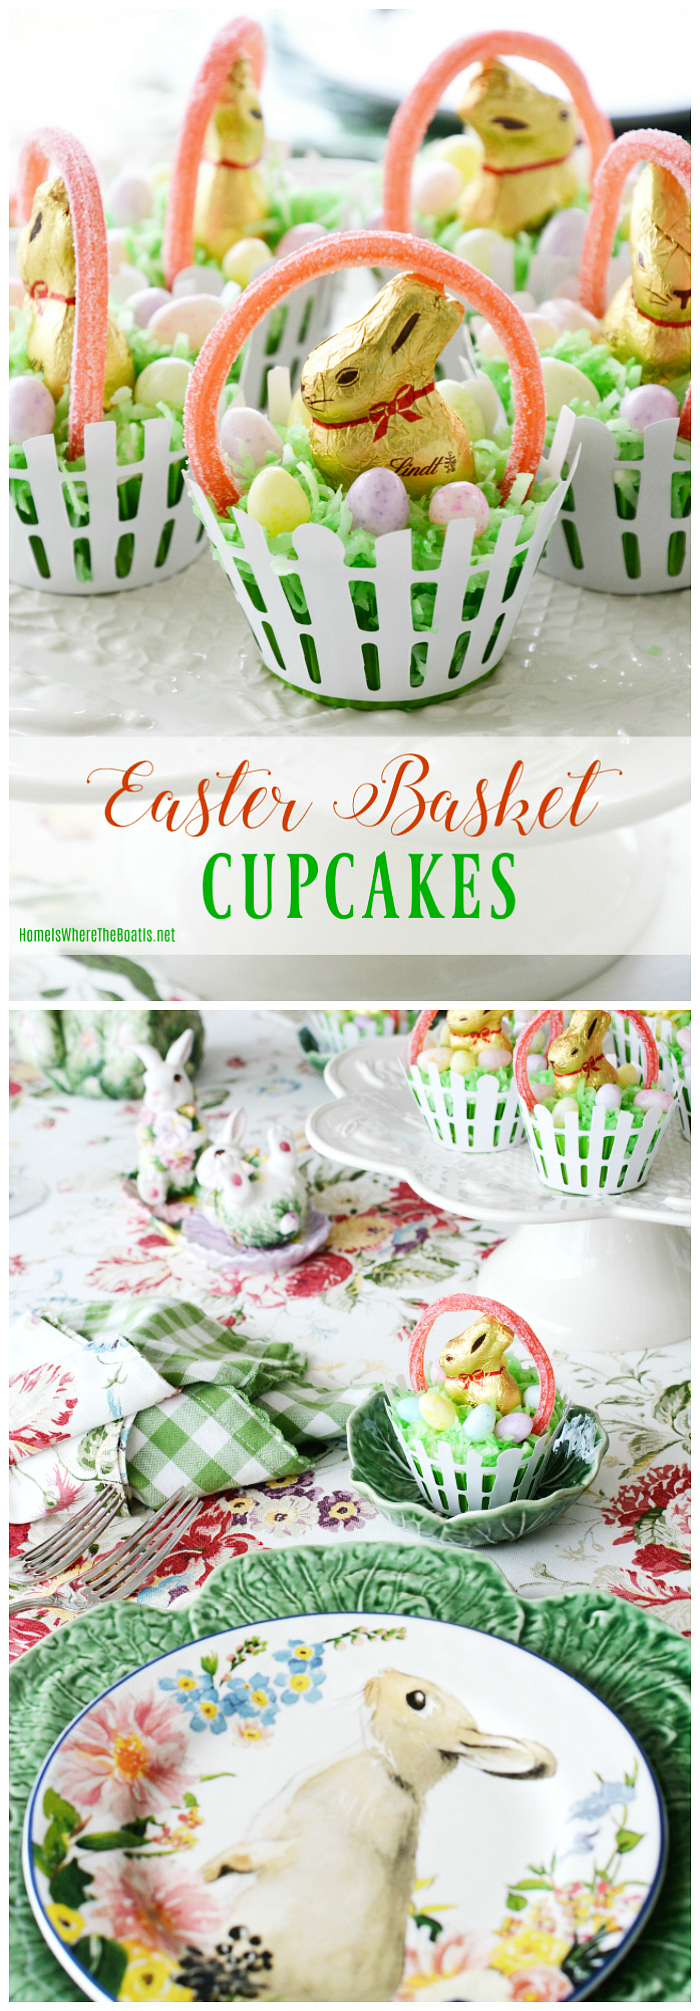 Easter Basket Cupcakes: As Fun To Make As They Are To Eat | ©homeiswheretheboatis.net #easter #cupcakes #recipe